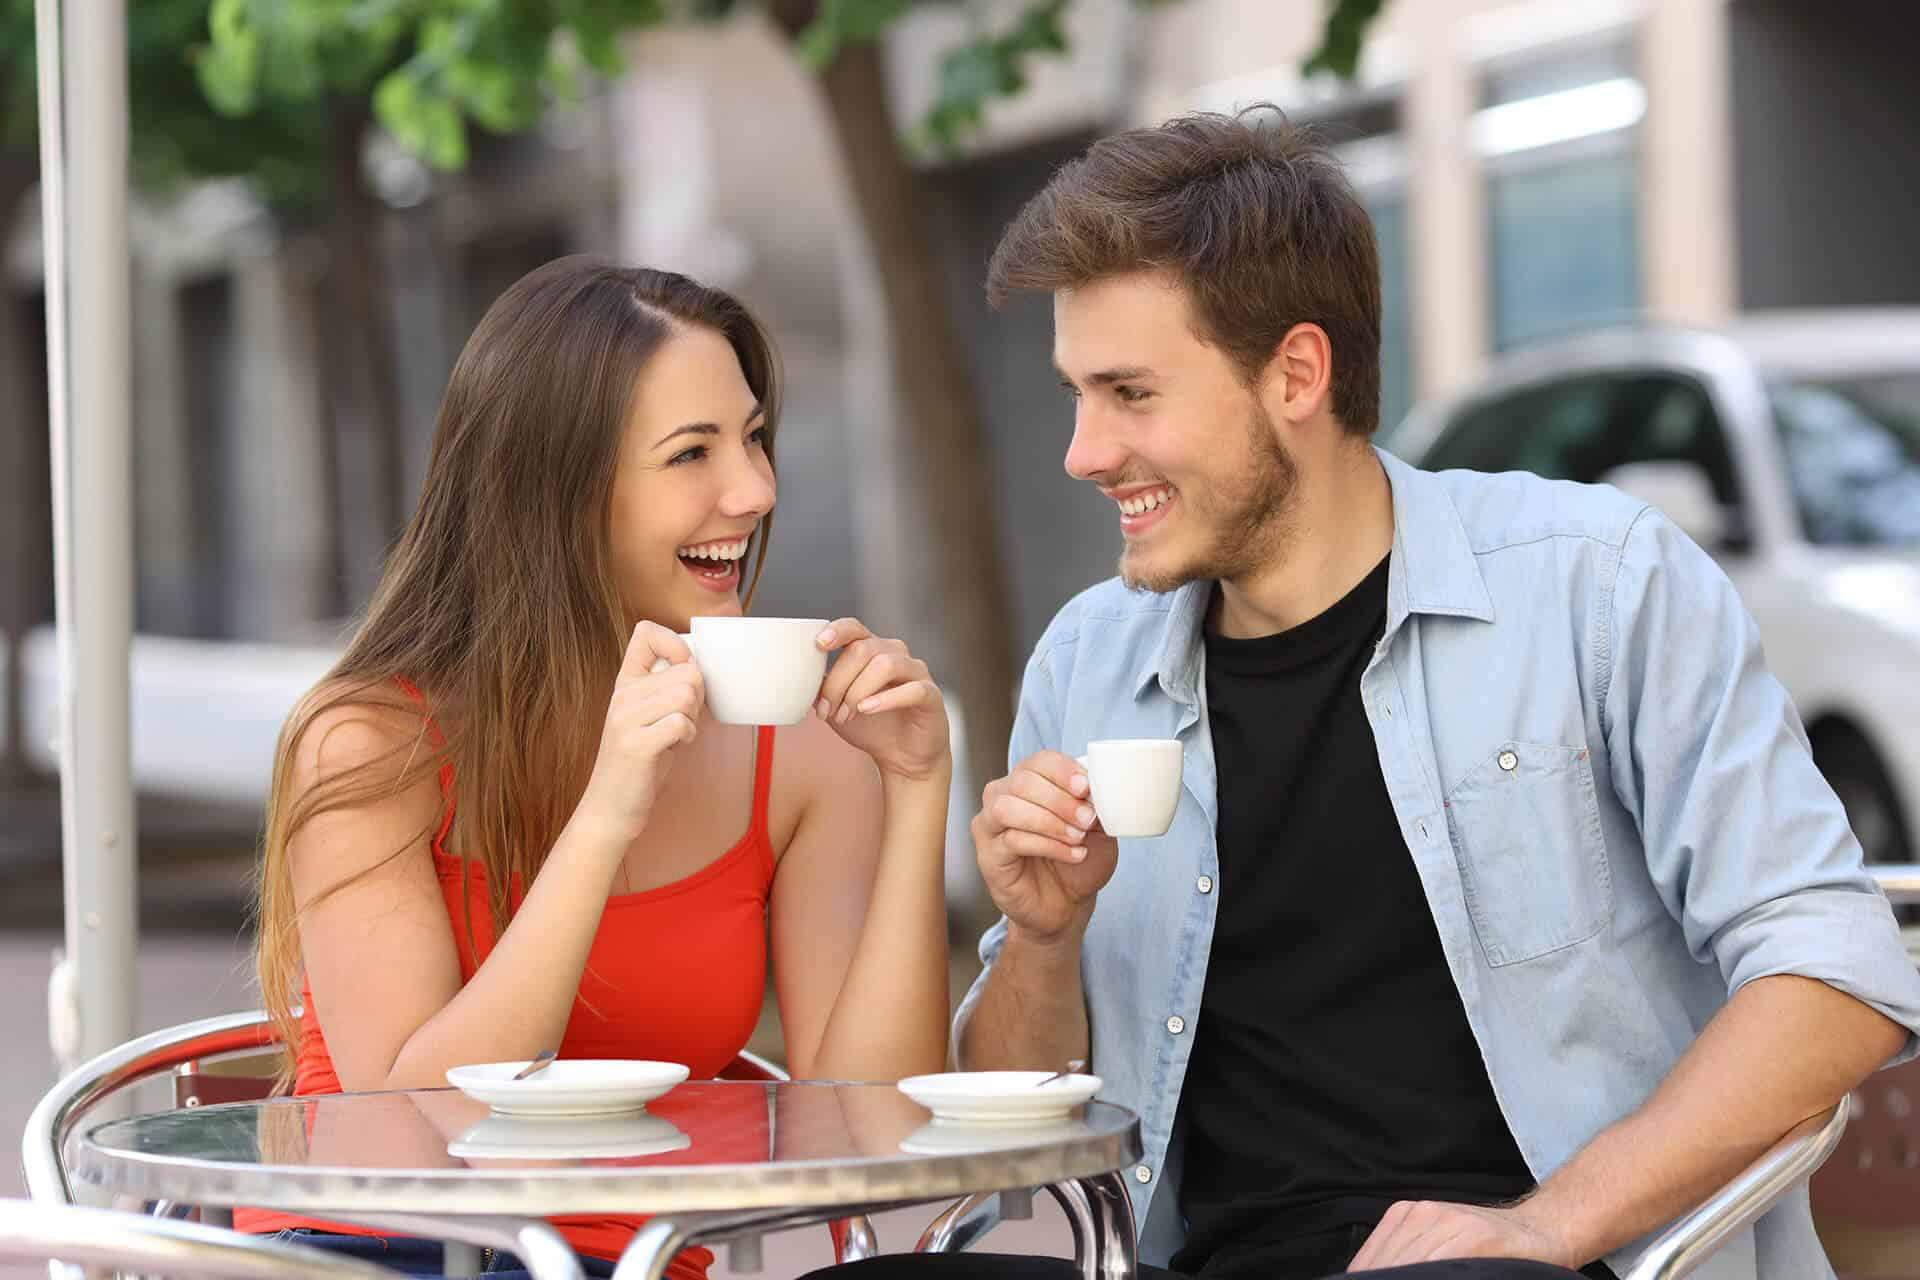 Whatsyourprice online dating site sells first dates